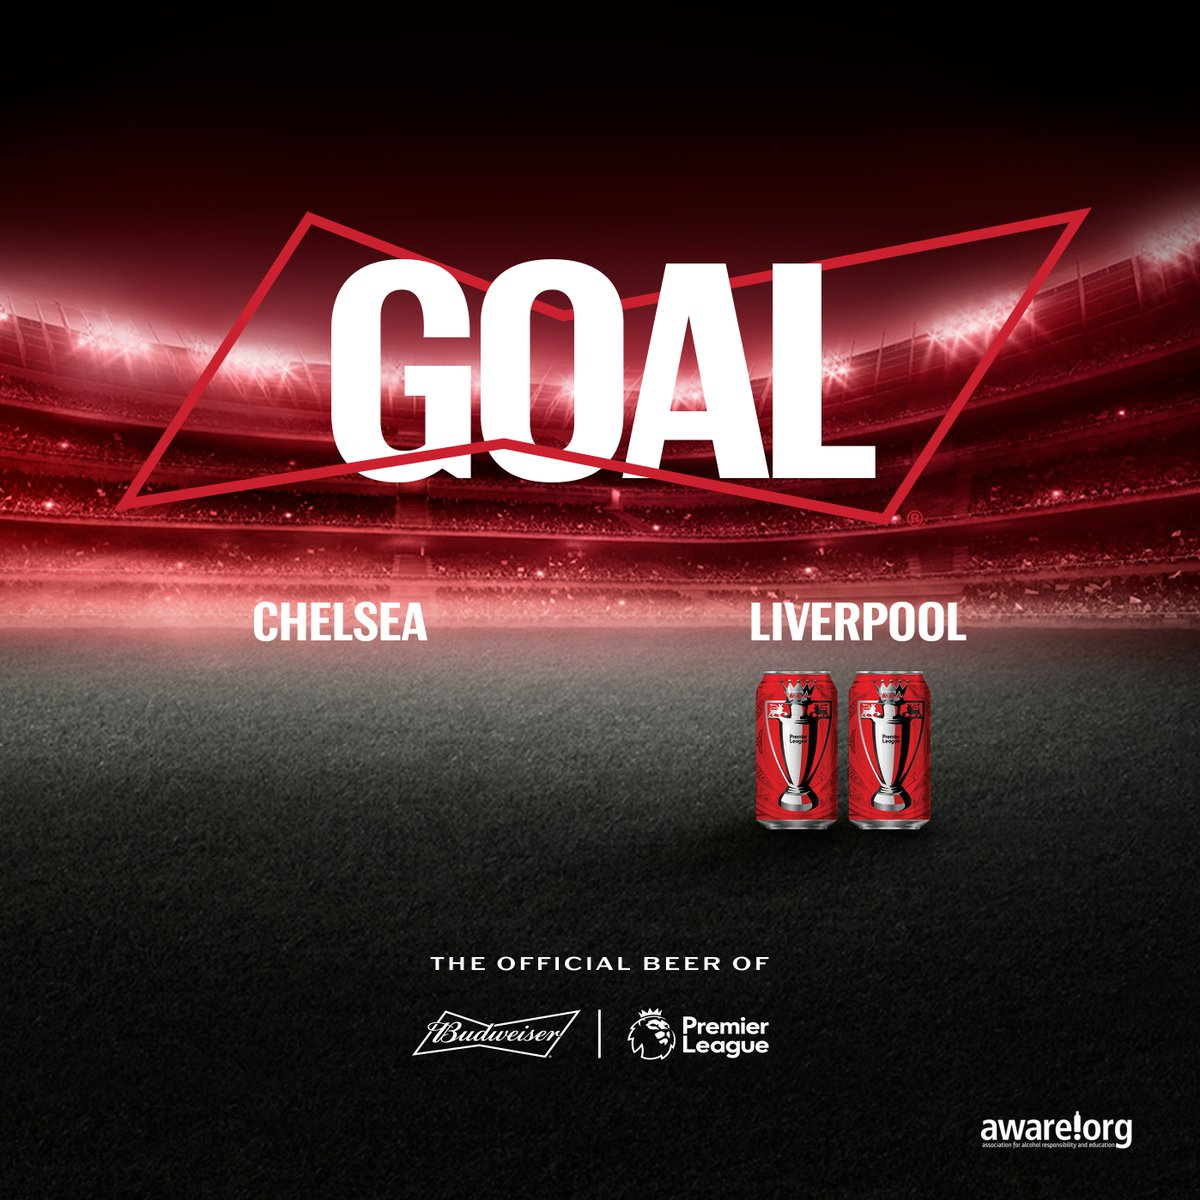 Mane at the double! What scoreline would this game end at? #SmoothForNaijaKings #BeAKing #CHELIV https://t.co/Wfa9qKn1BC